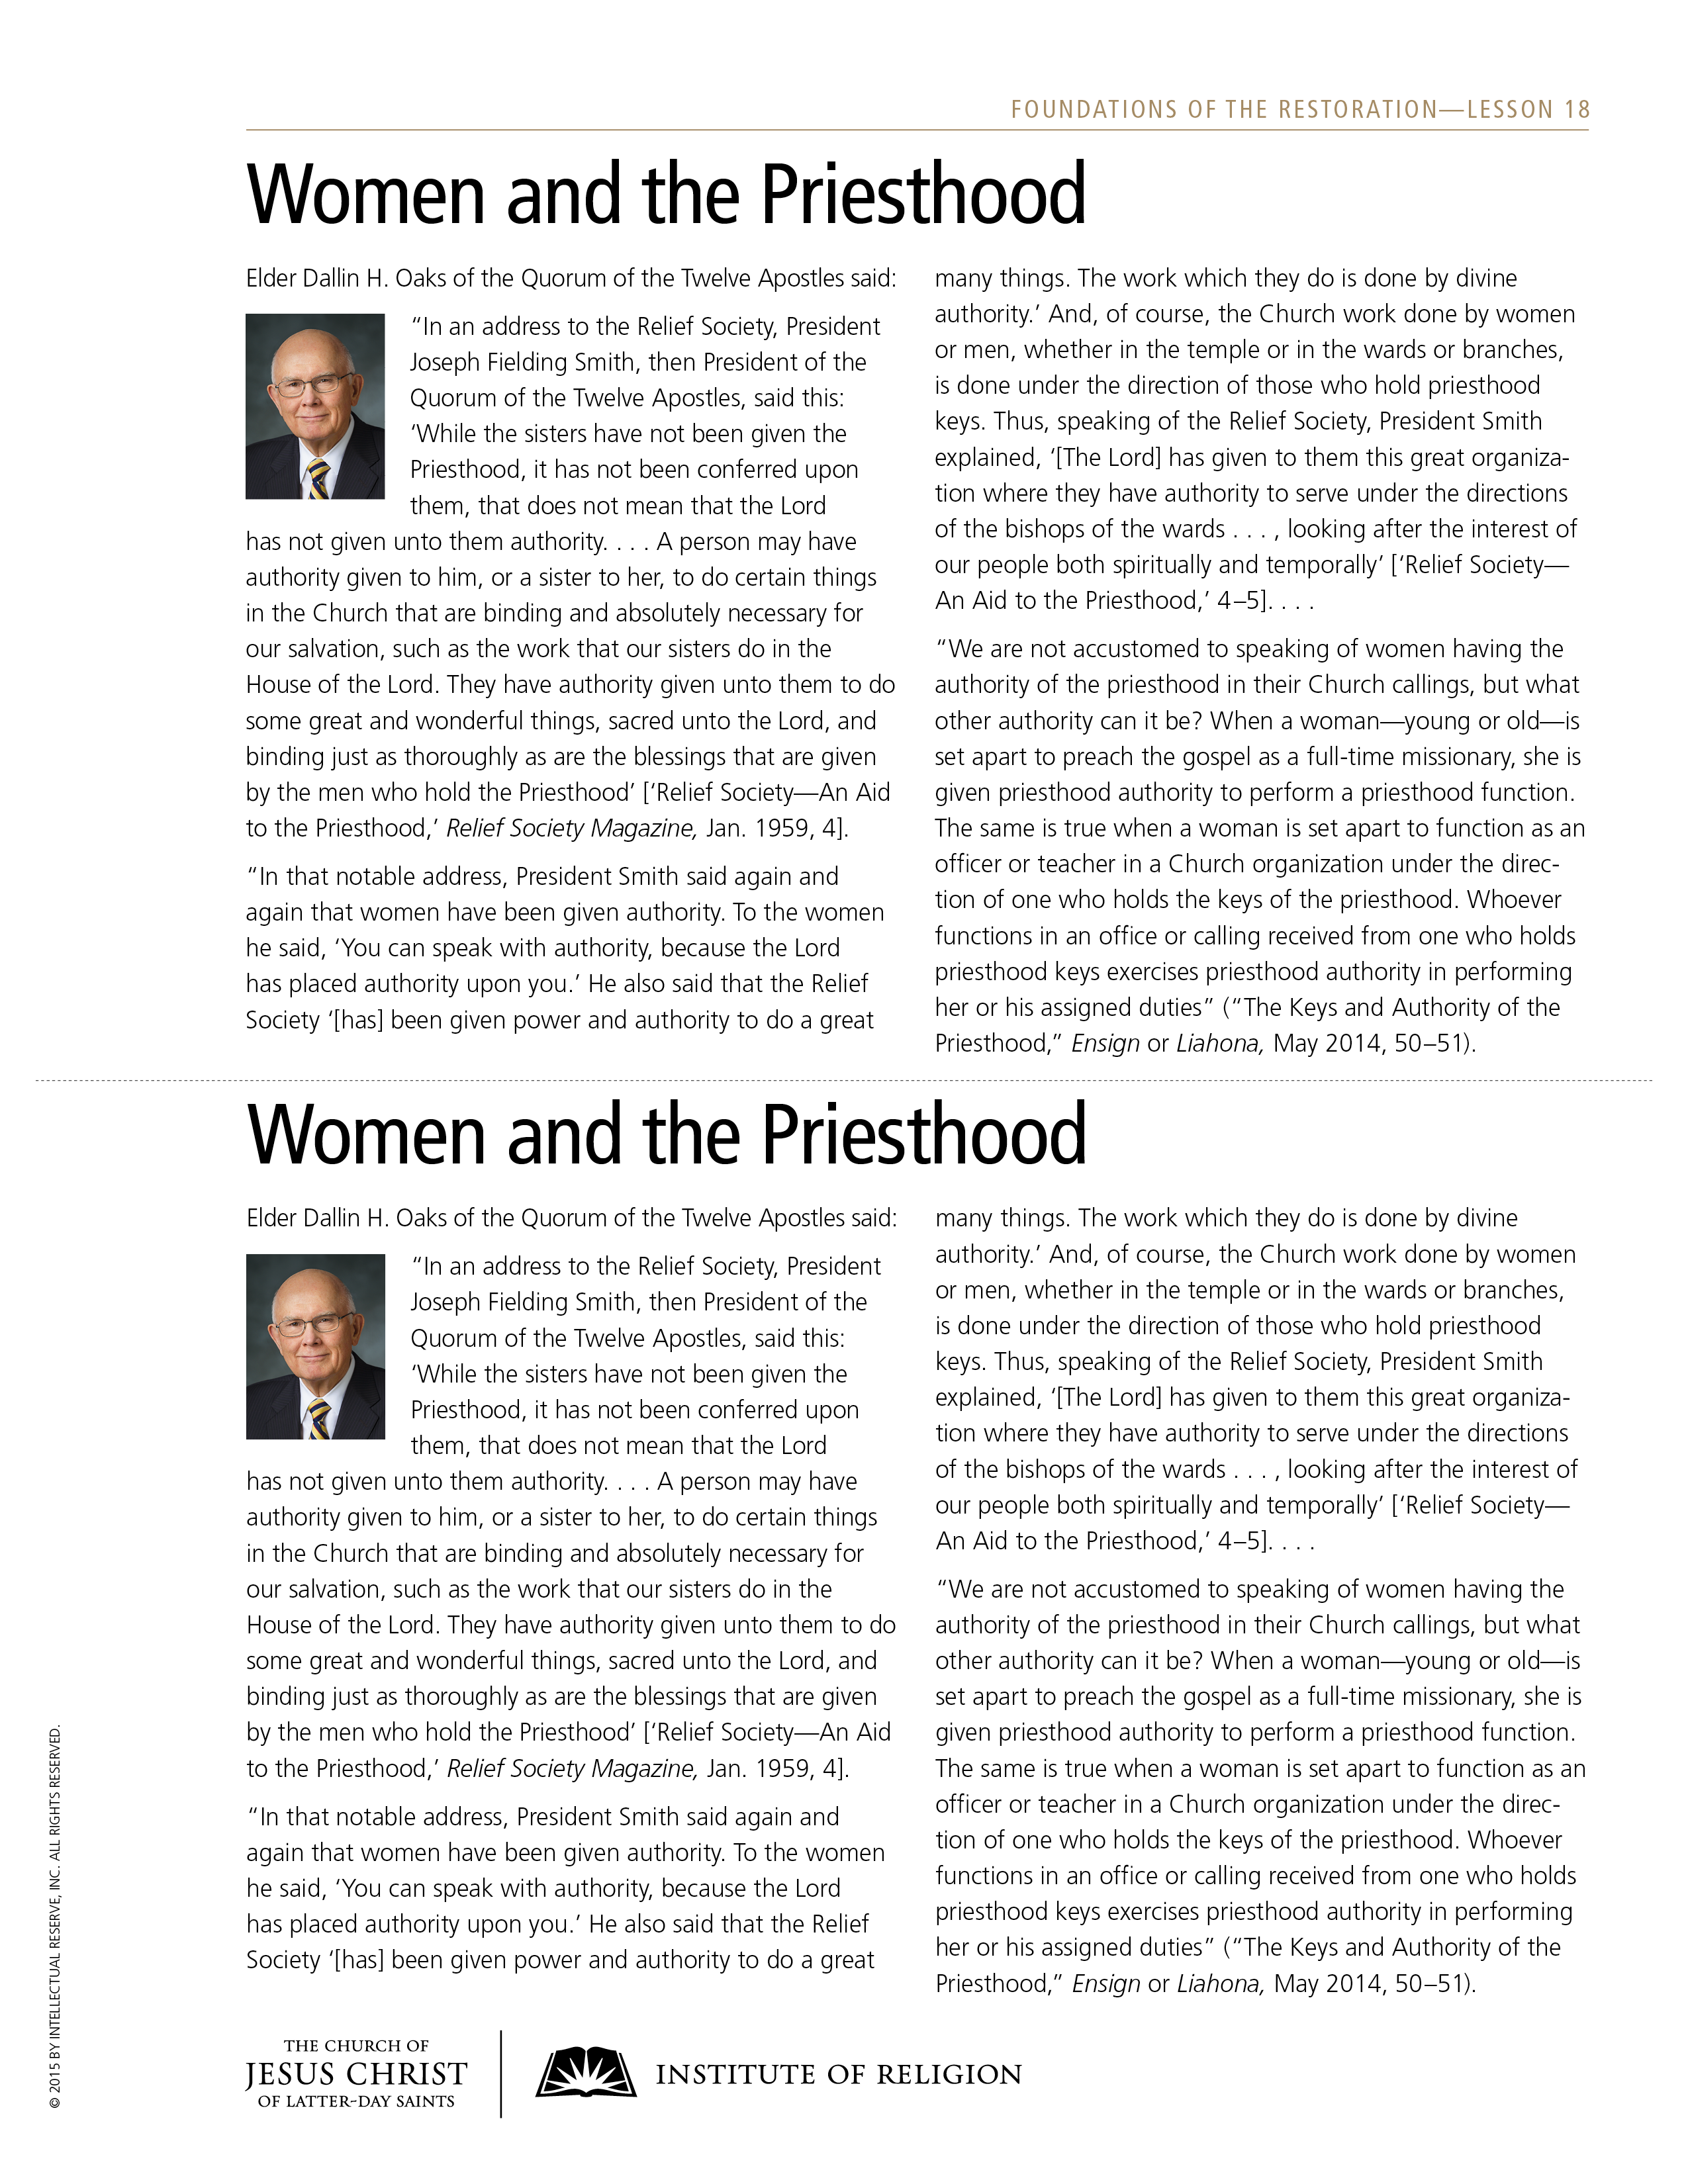 handout, Women and the Priesthood